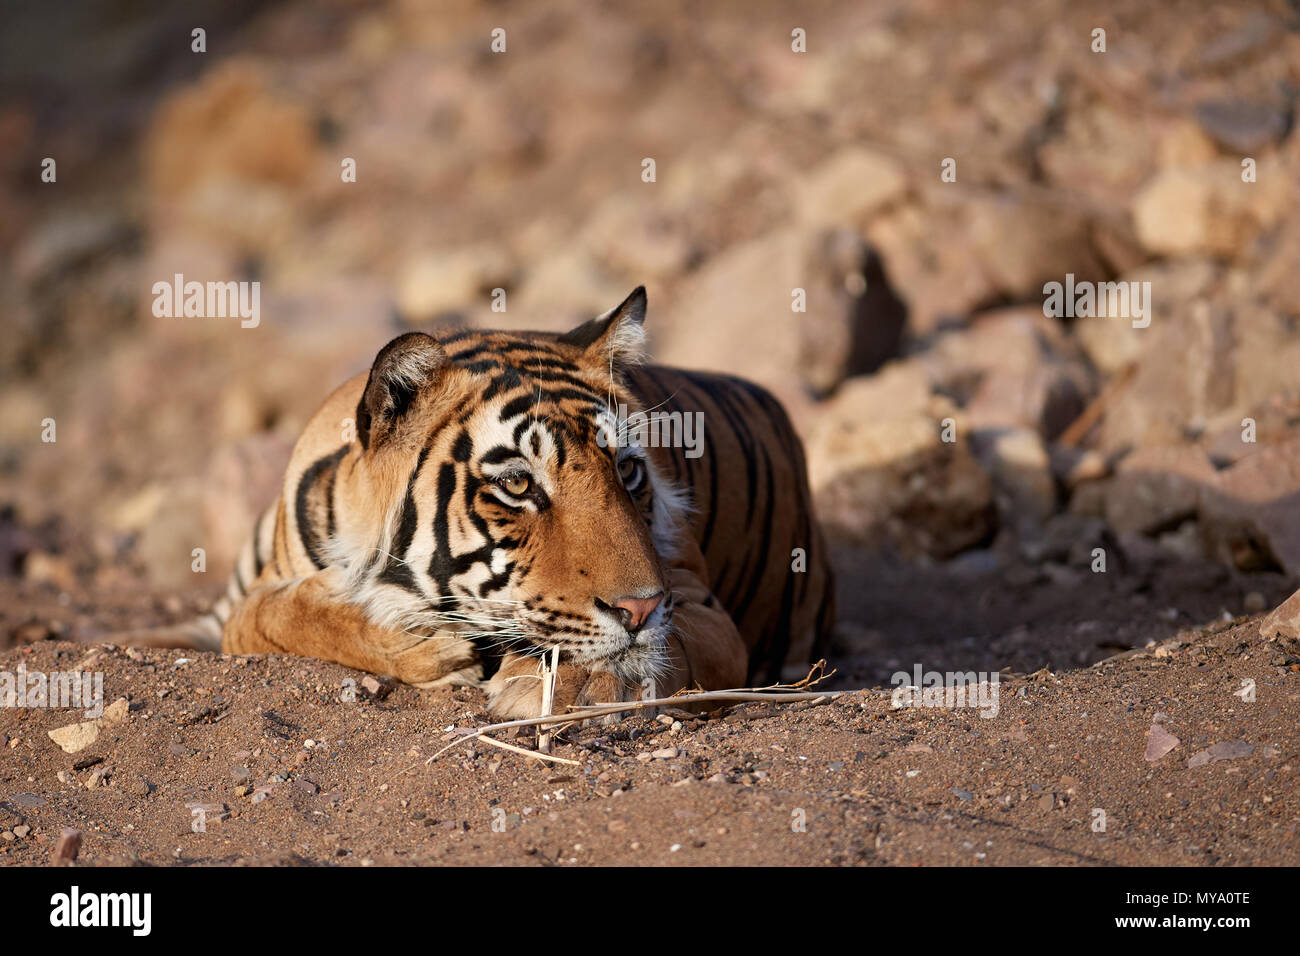 Tiger Cub - Stock Image